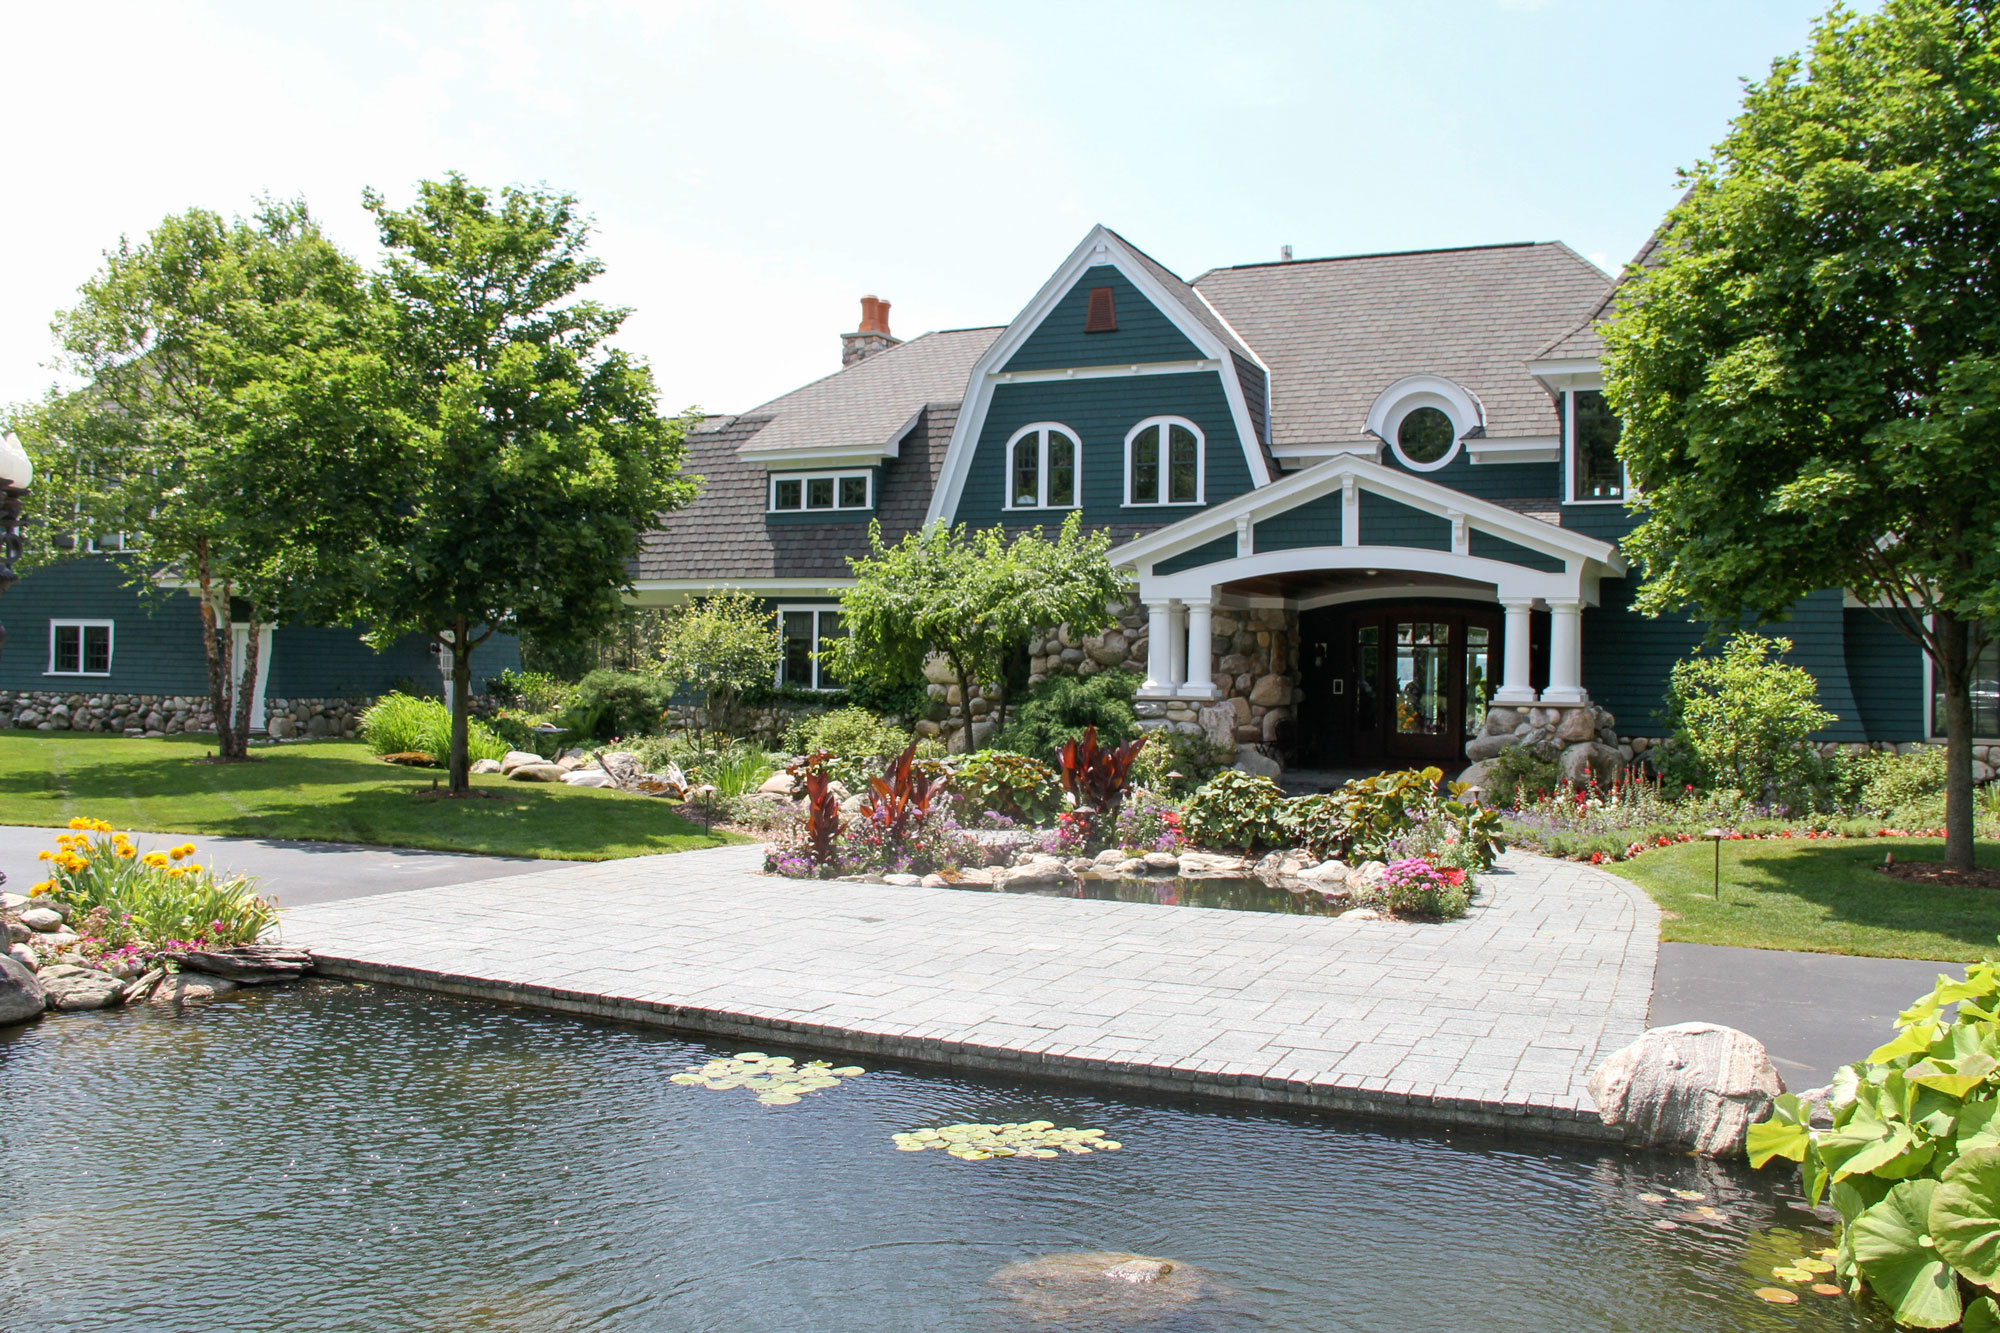 Pond water feature goes right up to driveway and walkway for a stunning first impression of visitors to this home